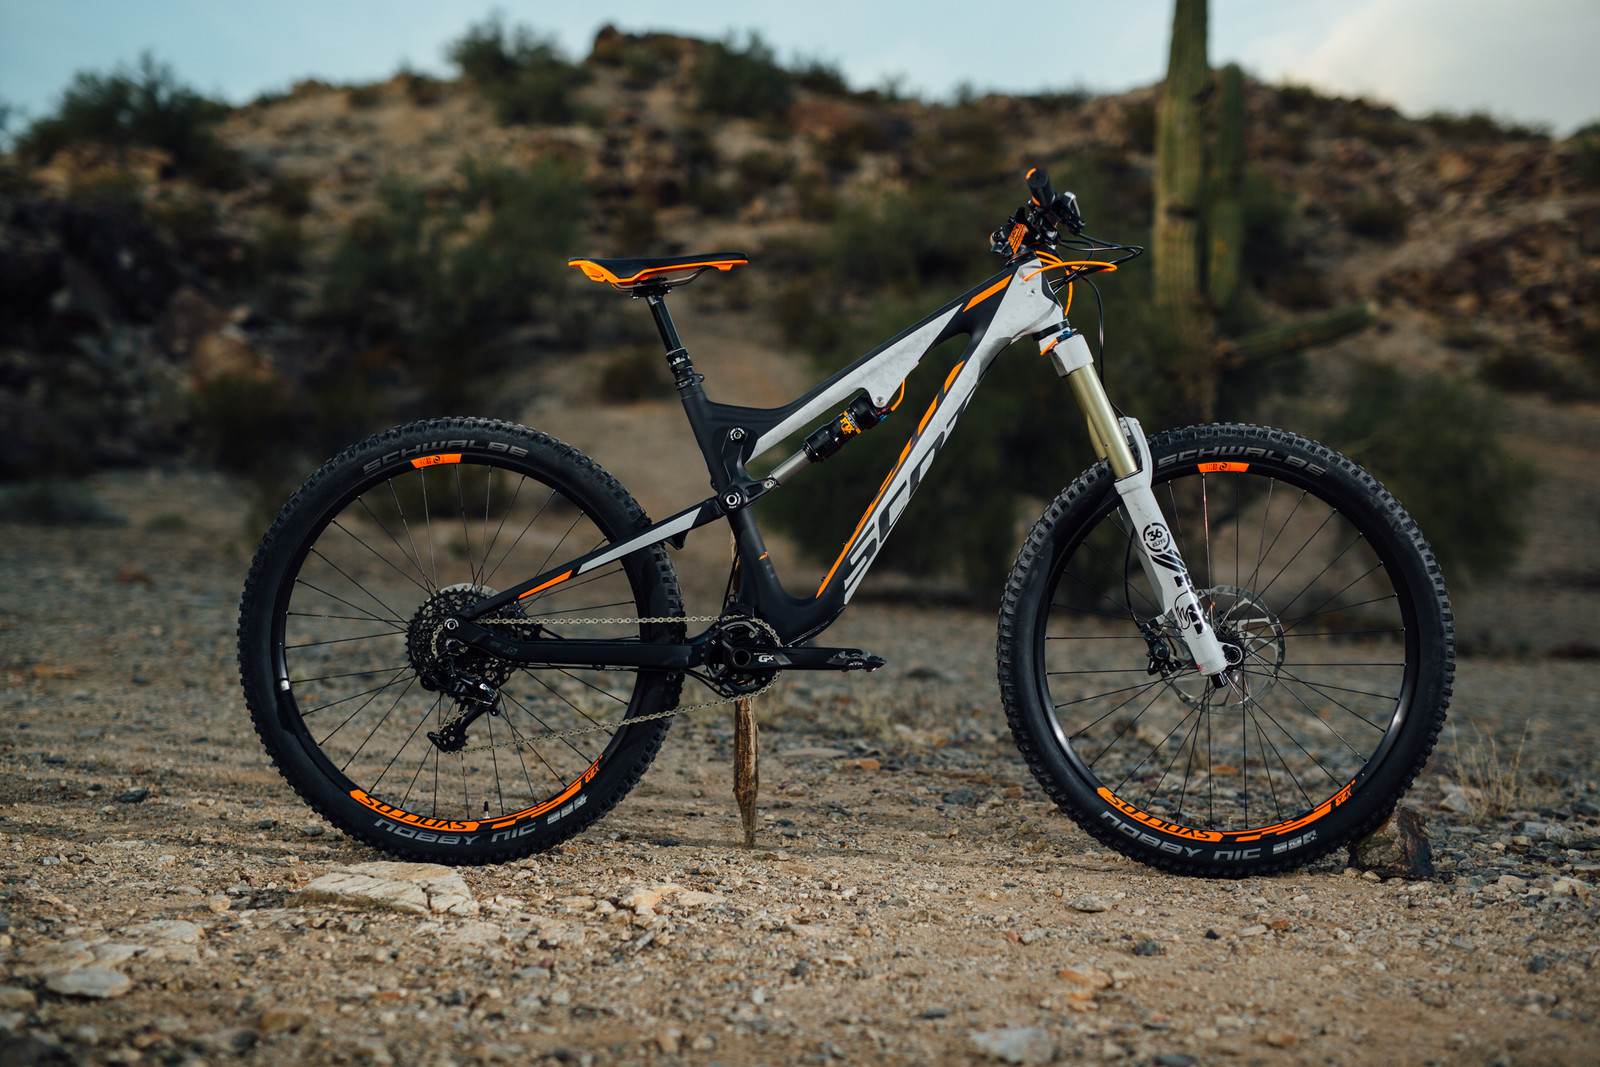 Scott Genius LT 710 - 2016 Vital MTB Test Sessions - Scott Genius LT 710 - 2016 Vital MTB Test Sessions - Mountain Biking Pictures - Vital MTB